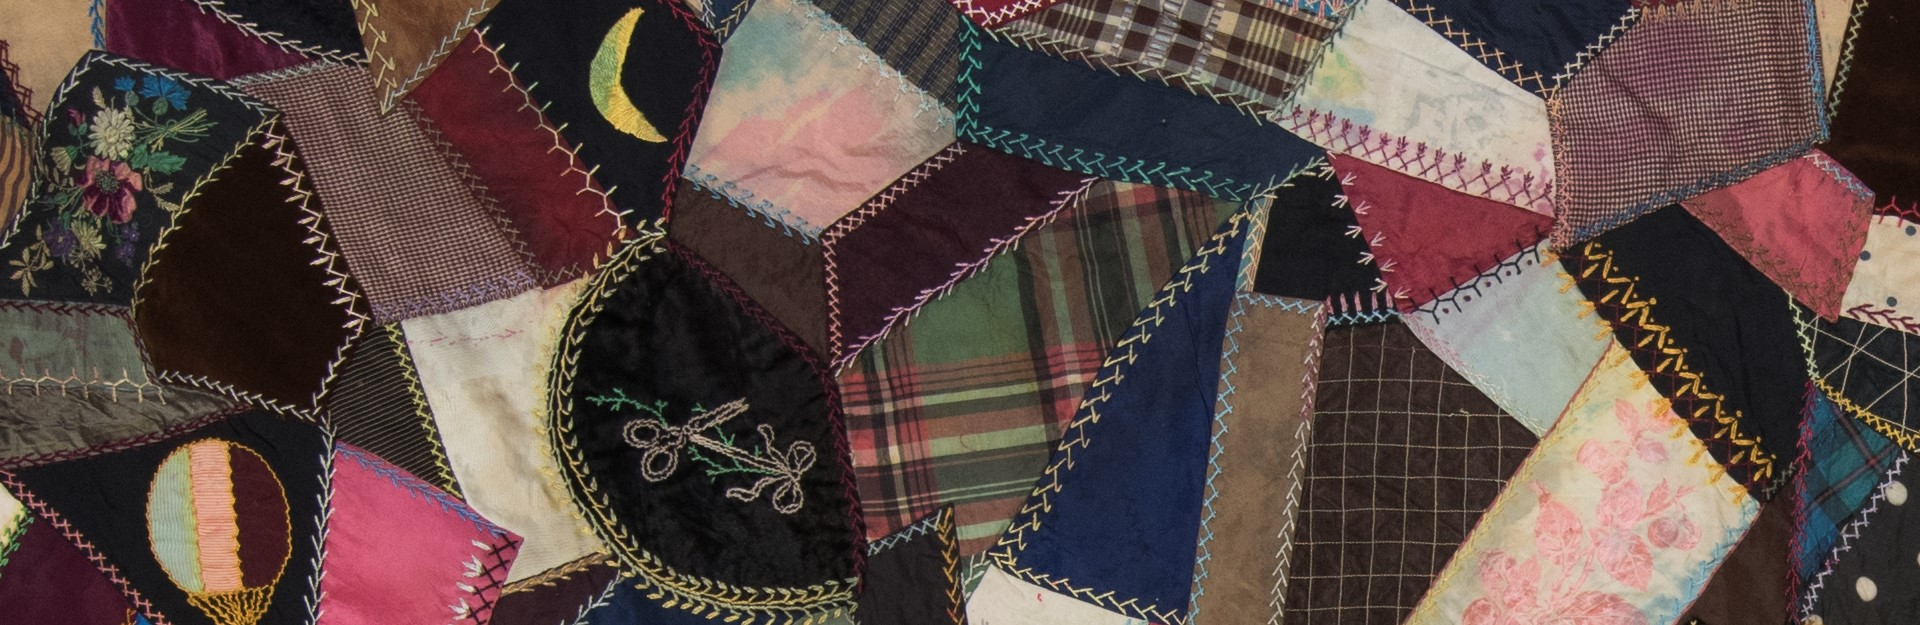 Civil War Crazy Quilt